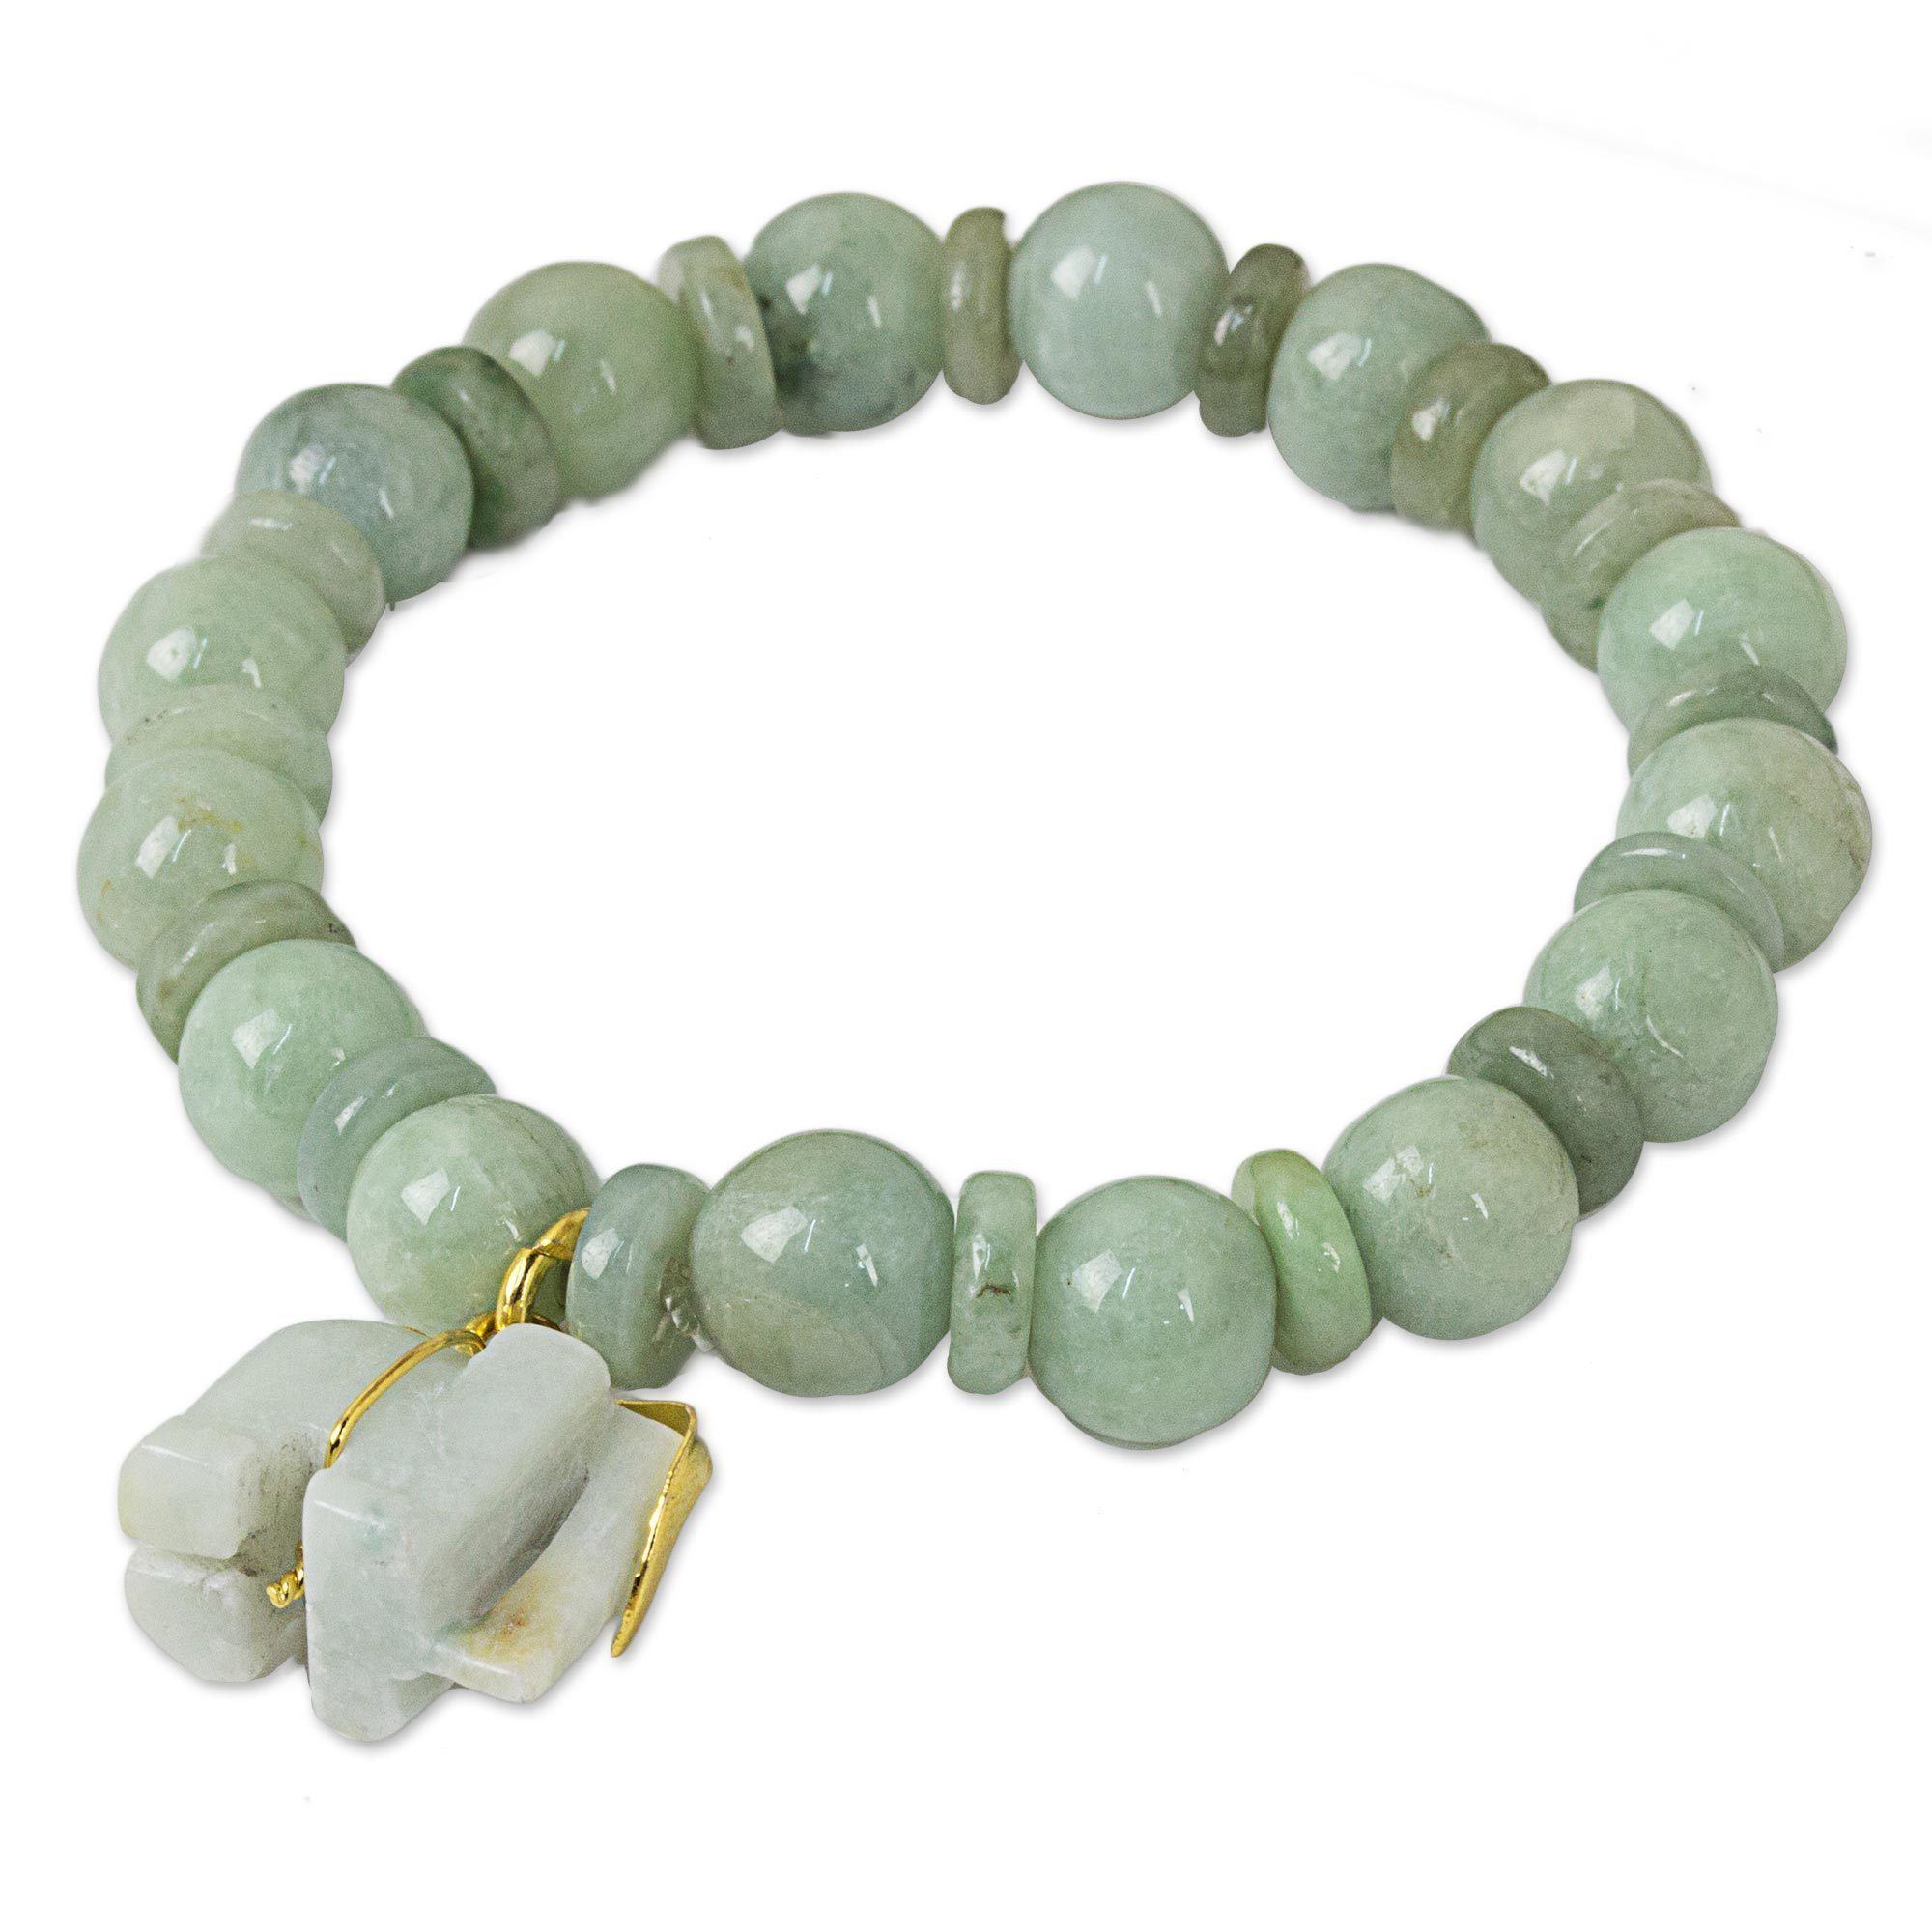 my jade bracelet sacred beads product